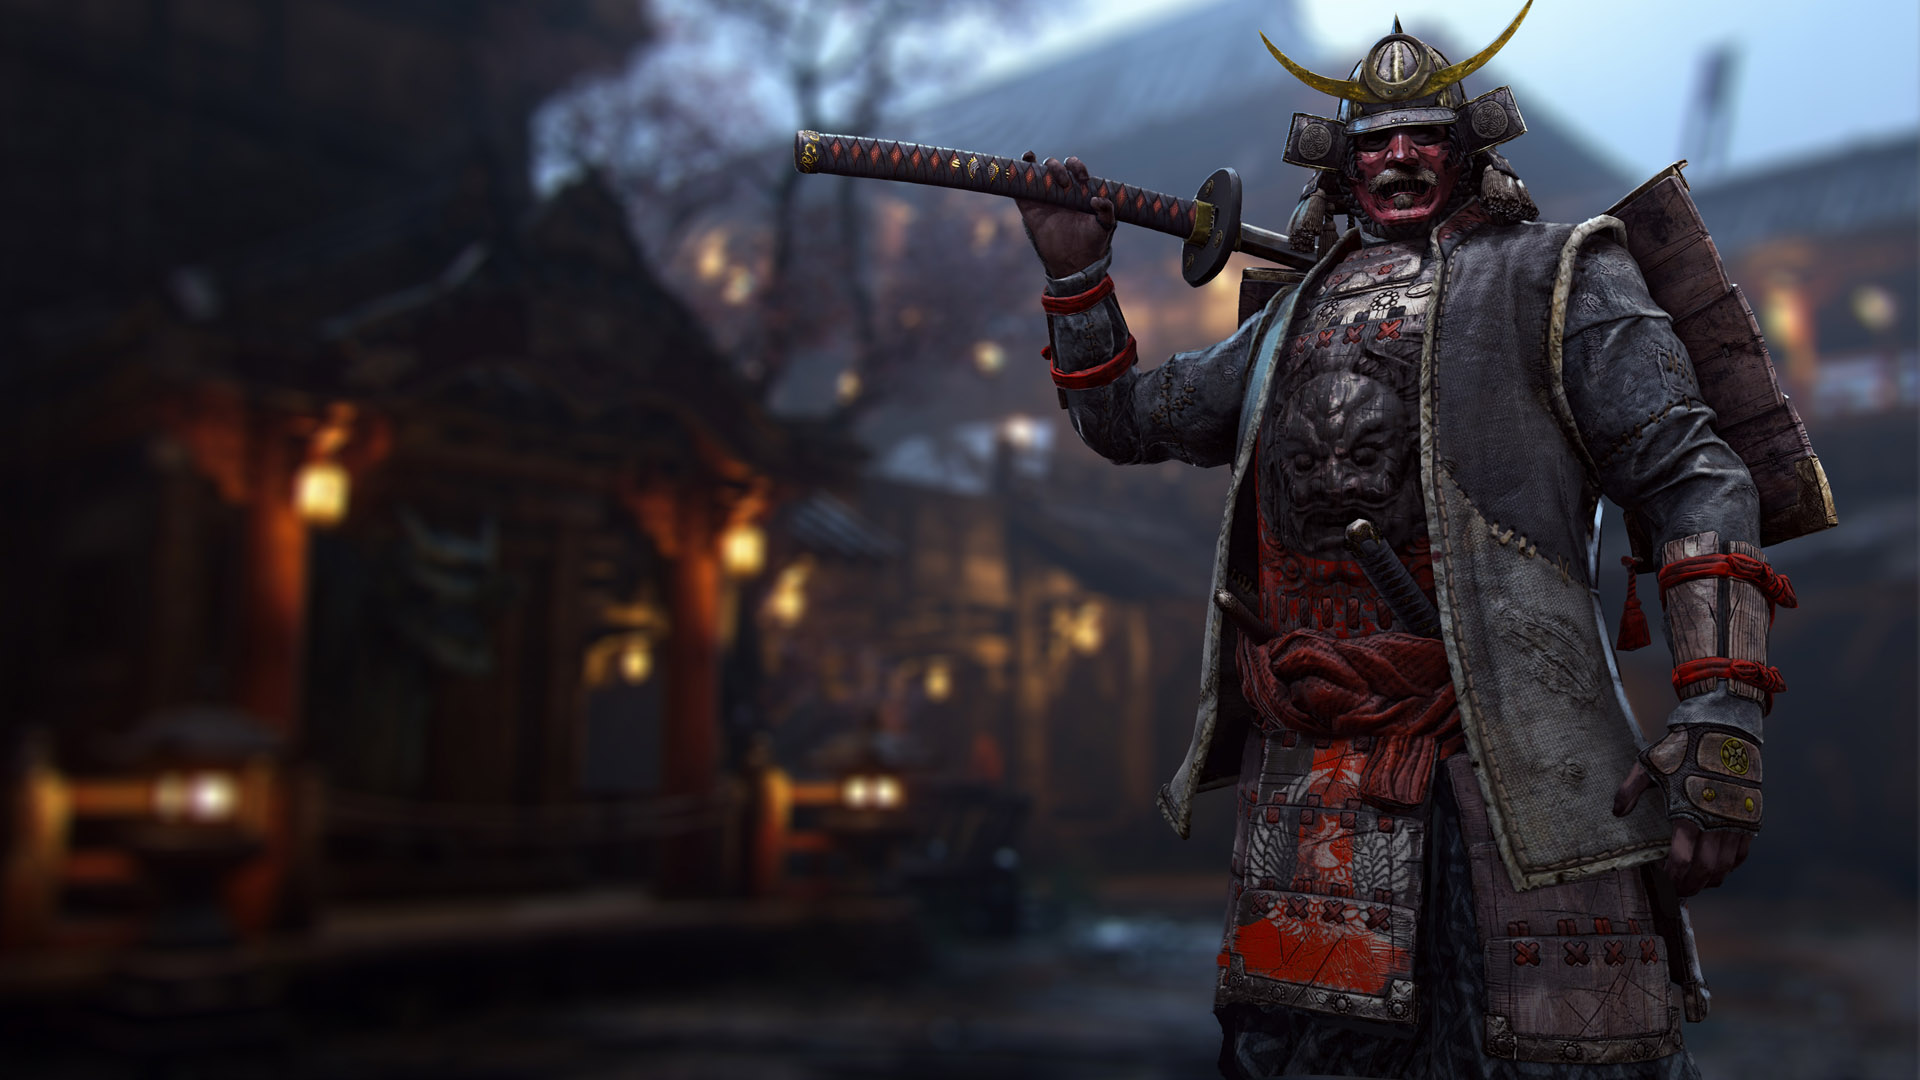 The Kensei, in a similar style to the Warden, is another one of the best characters in For Honor. With a volley of unblockable moves, the Kensei offers a high skill cap for experienced players.